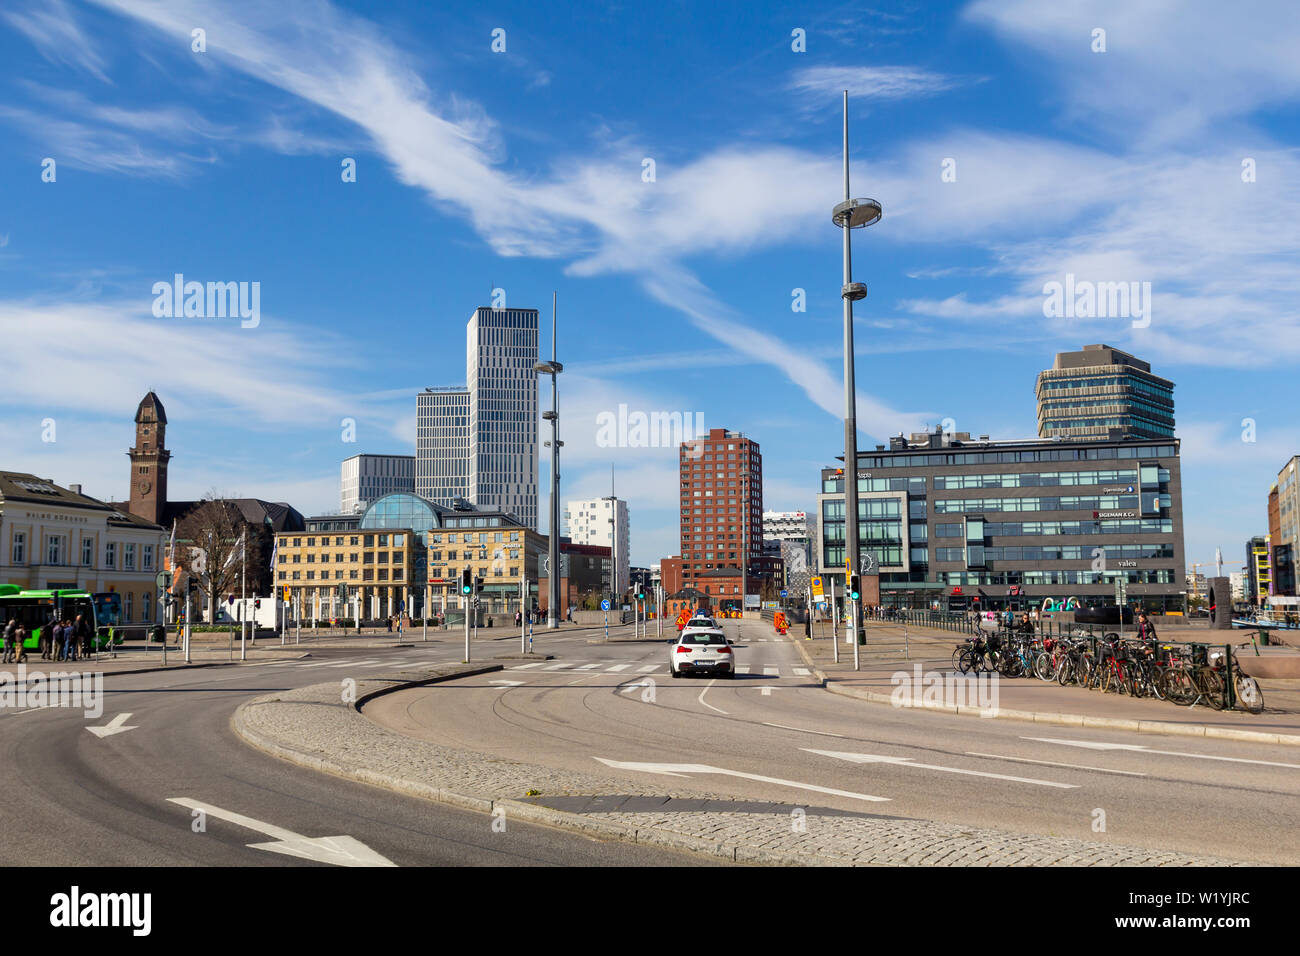 Street view and modern architecture in Malmo, the third largest city in Sweden Stock Photo